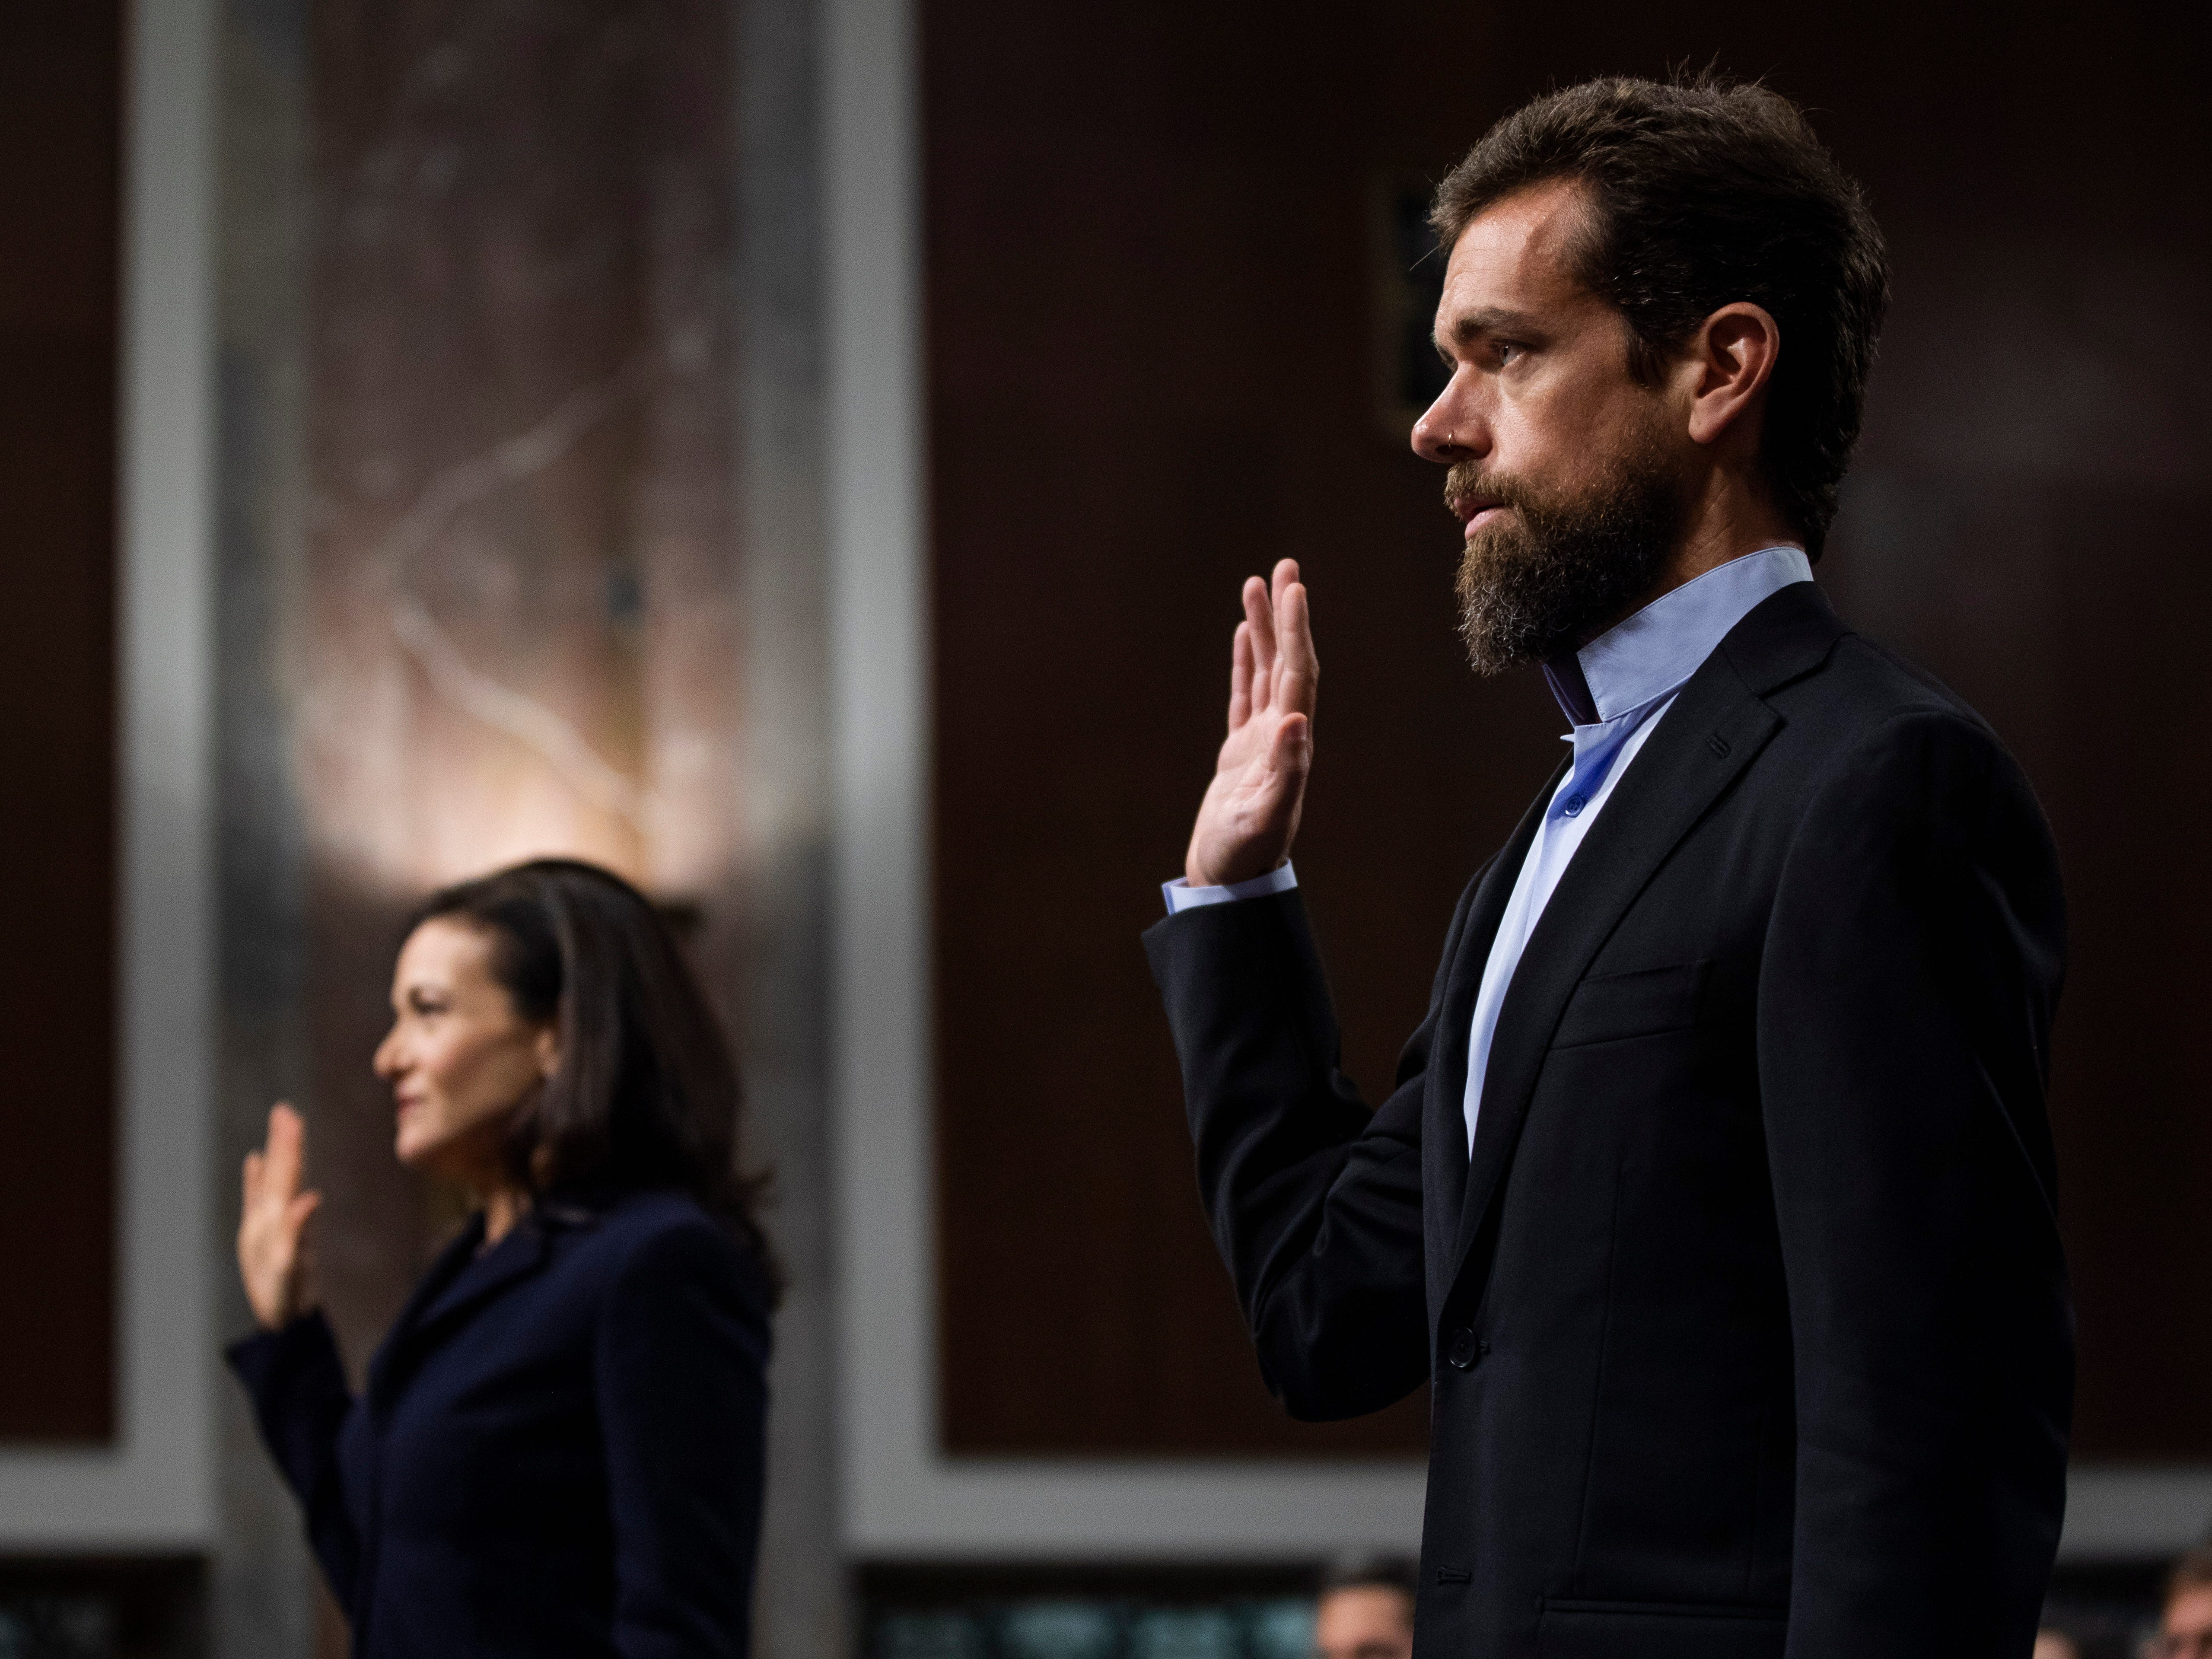 CEO of Twitter Jack Dorsey (R) and COO of Facebook Sheryl Sandberg (L) are sworn-in before testifying at a Senate Intelligence Committee hearing on 'foreign influence operations and their use of social media platforms' in the Dirksen Senate Office Building in Washington, DC, USA, 05 September 2018. Lawmakers are expected to ask the top executives what measures they are implementing to protect their online content from Russian propaganda and political censorship. CEO of Alphabet (Google) Larry Page was invited to testify but did not show.